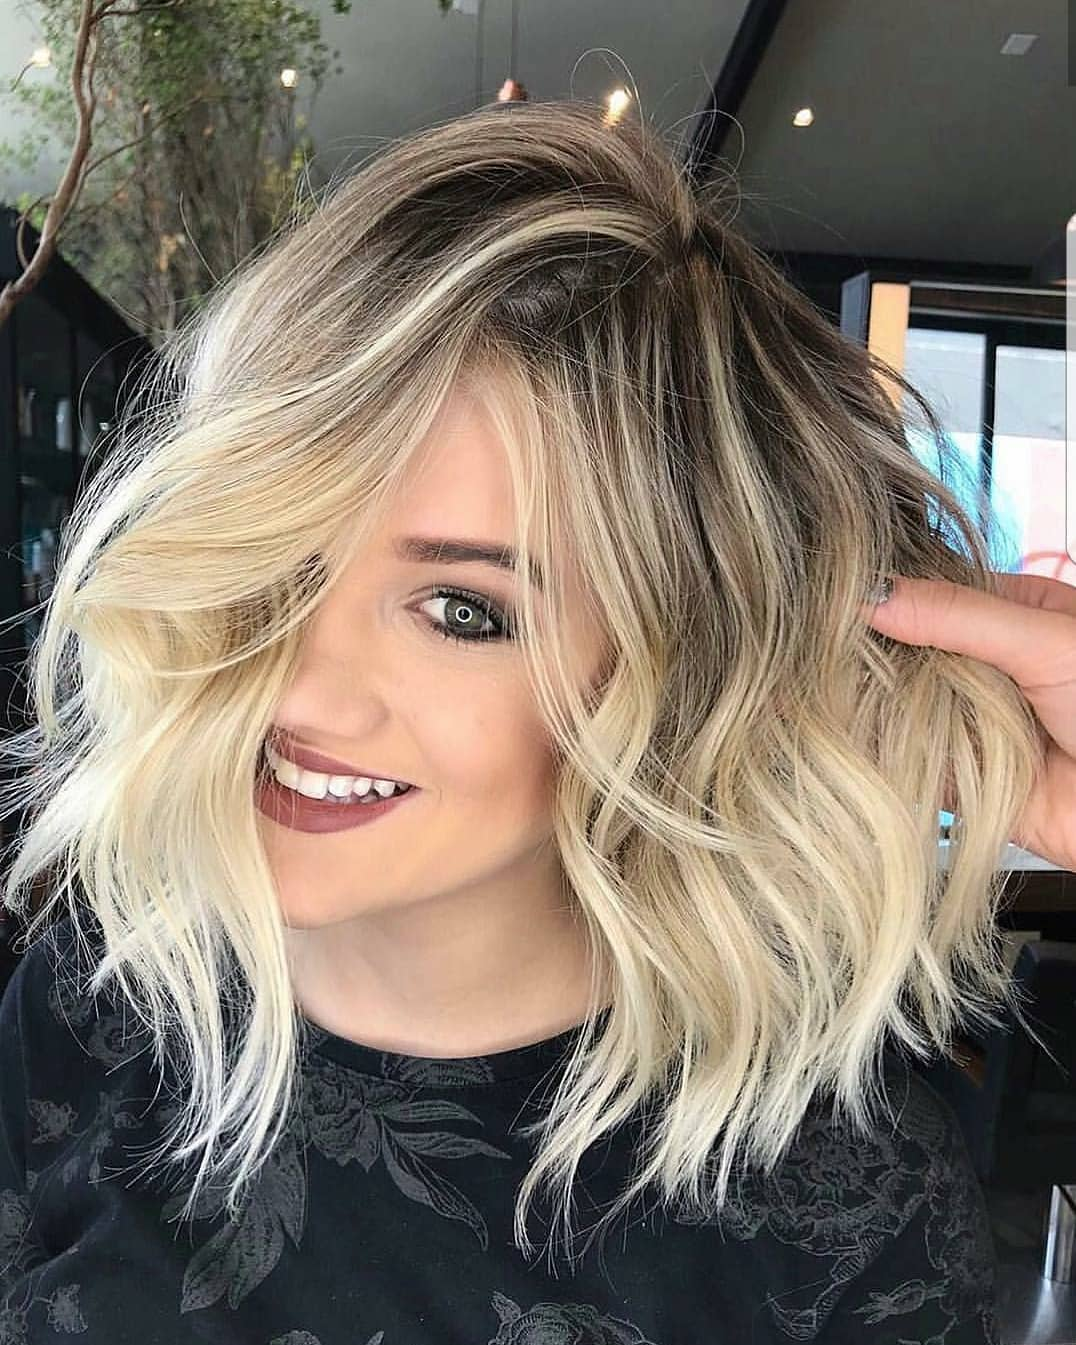 Most Popular Hairstyles on Pinterest Right Now 5